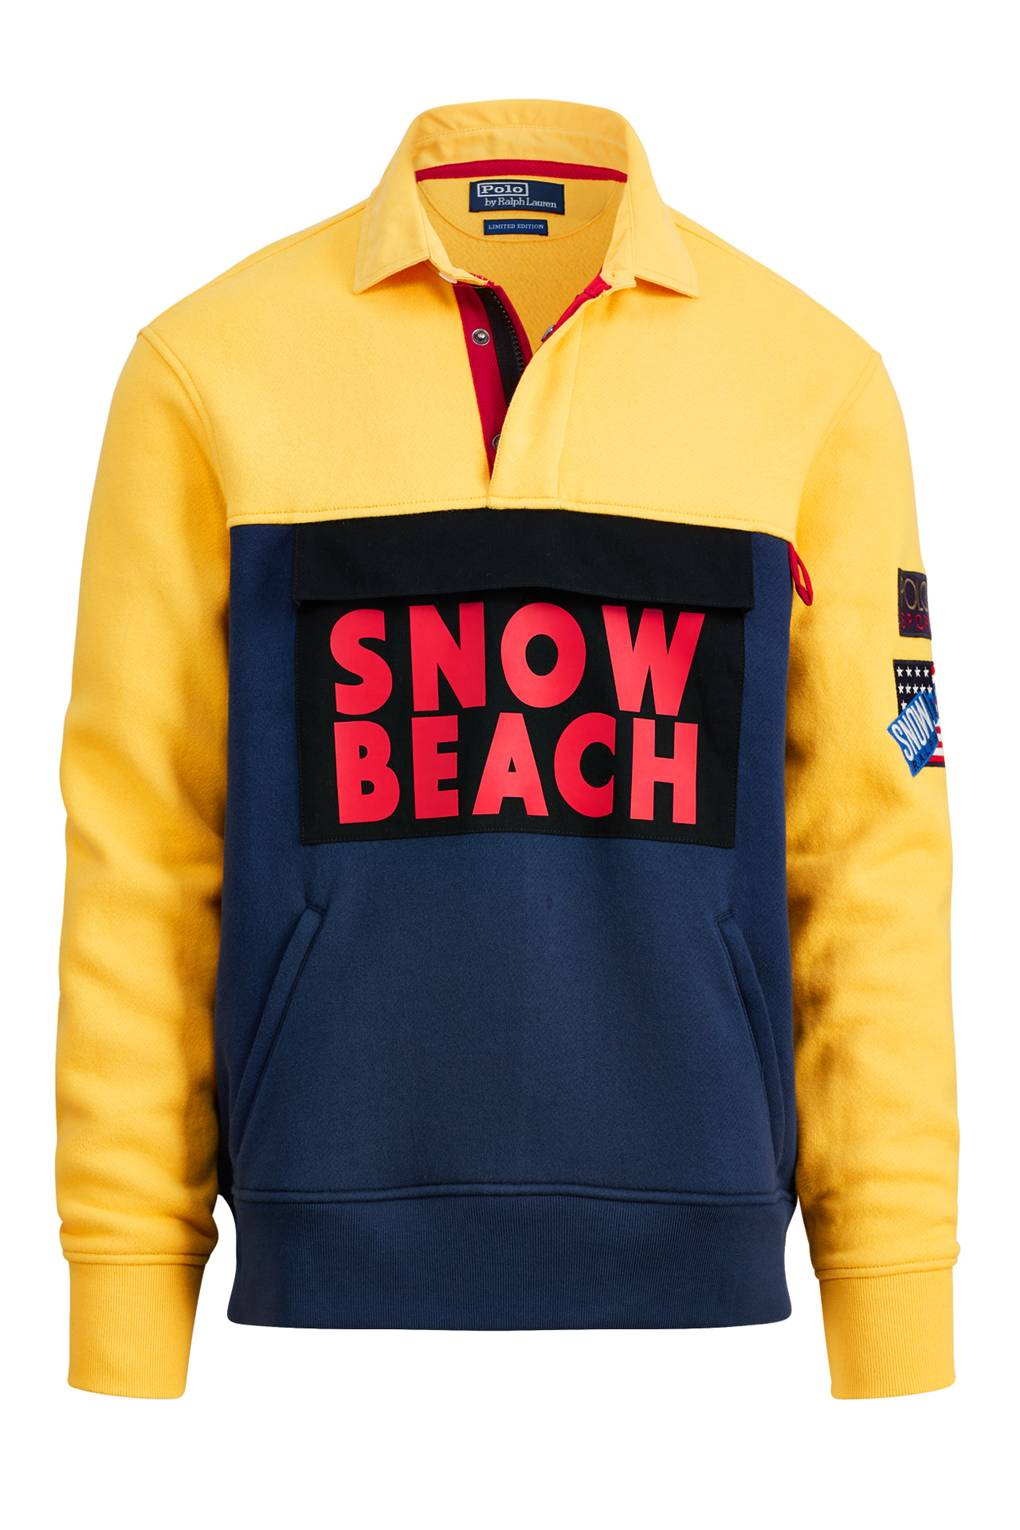 661a6203f0 Every item in the Ralph Lauren Snow Beach collection